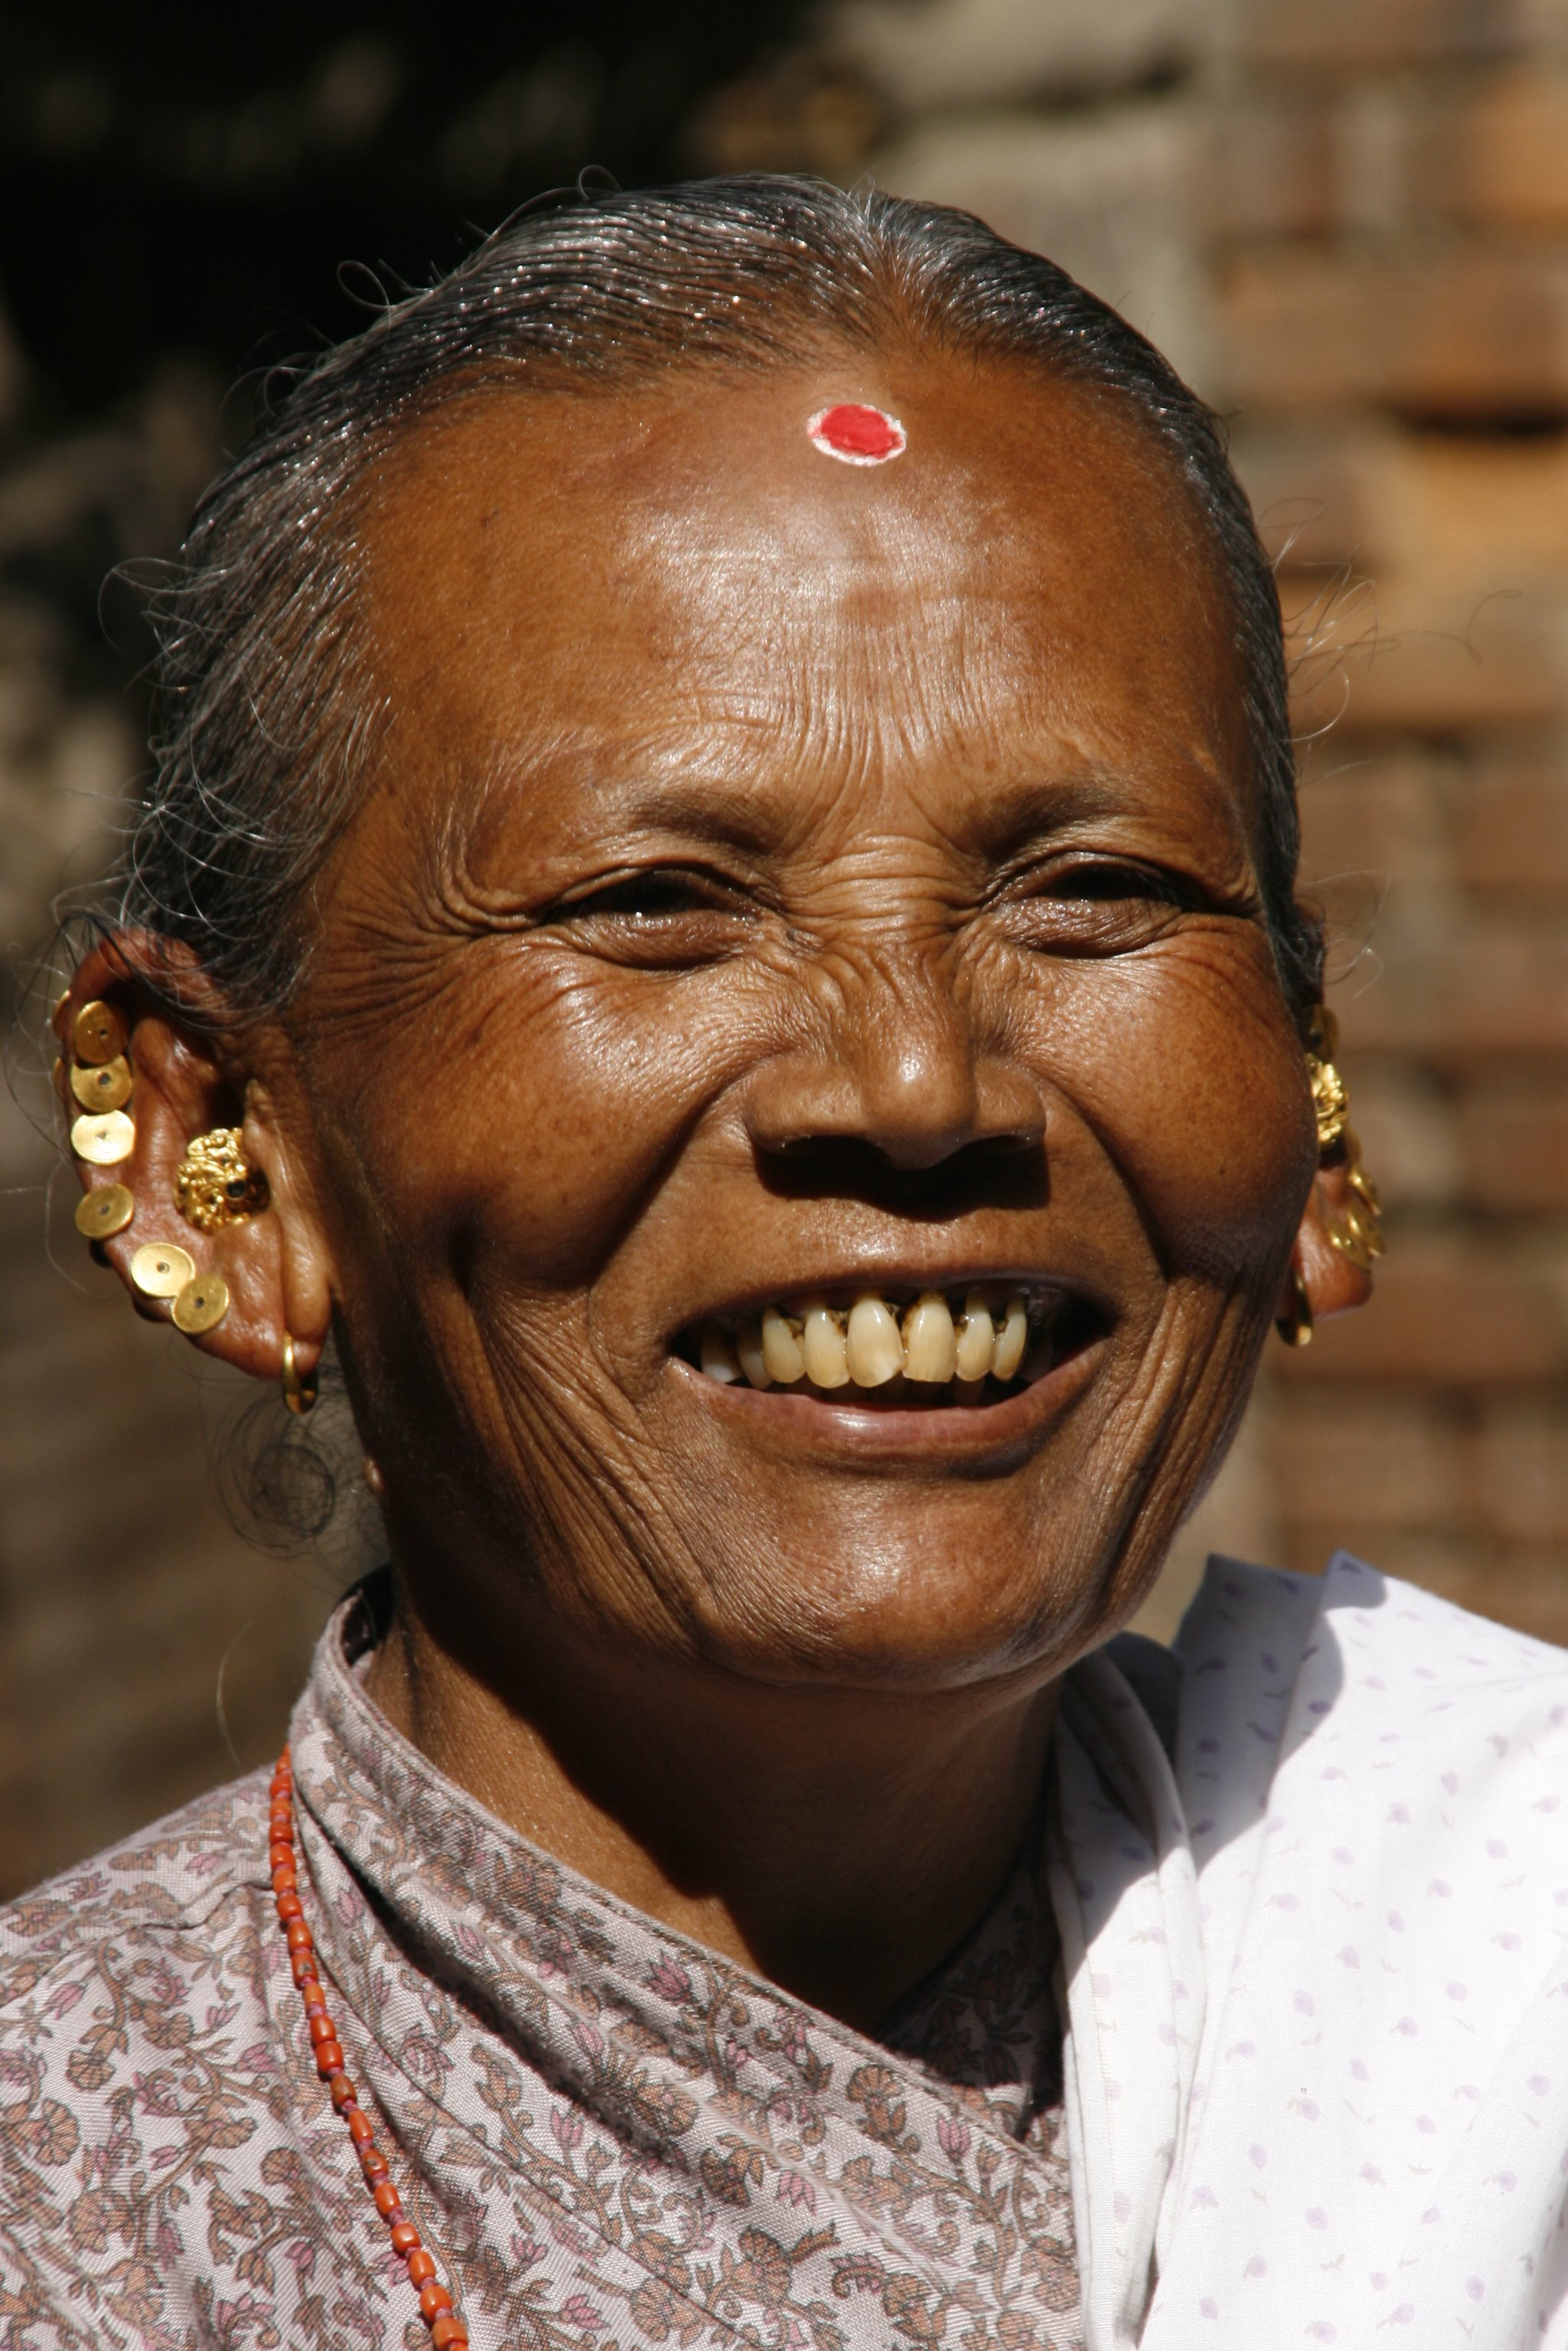 This is apparently the best image of a smile that Wikipedia can find.